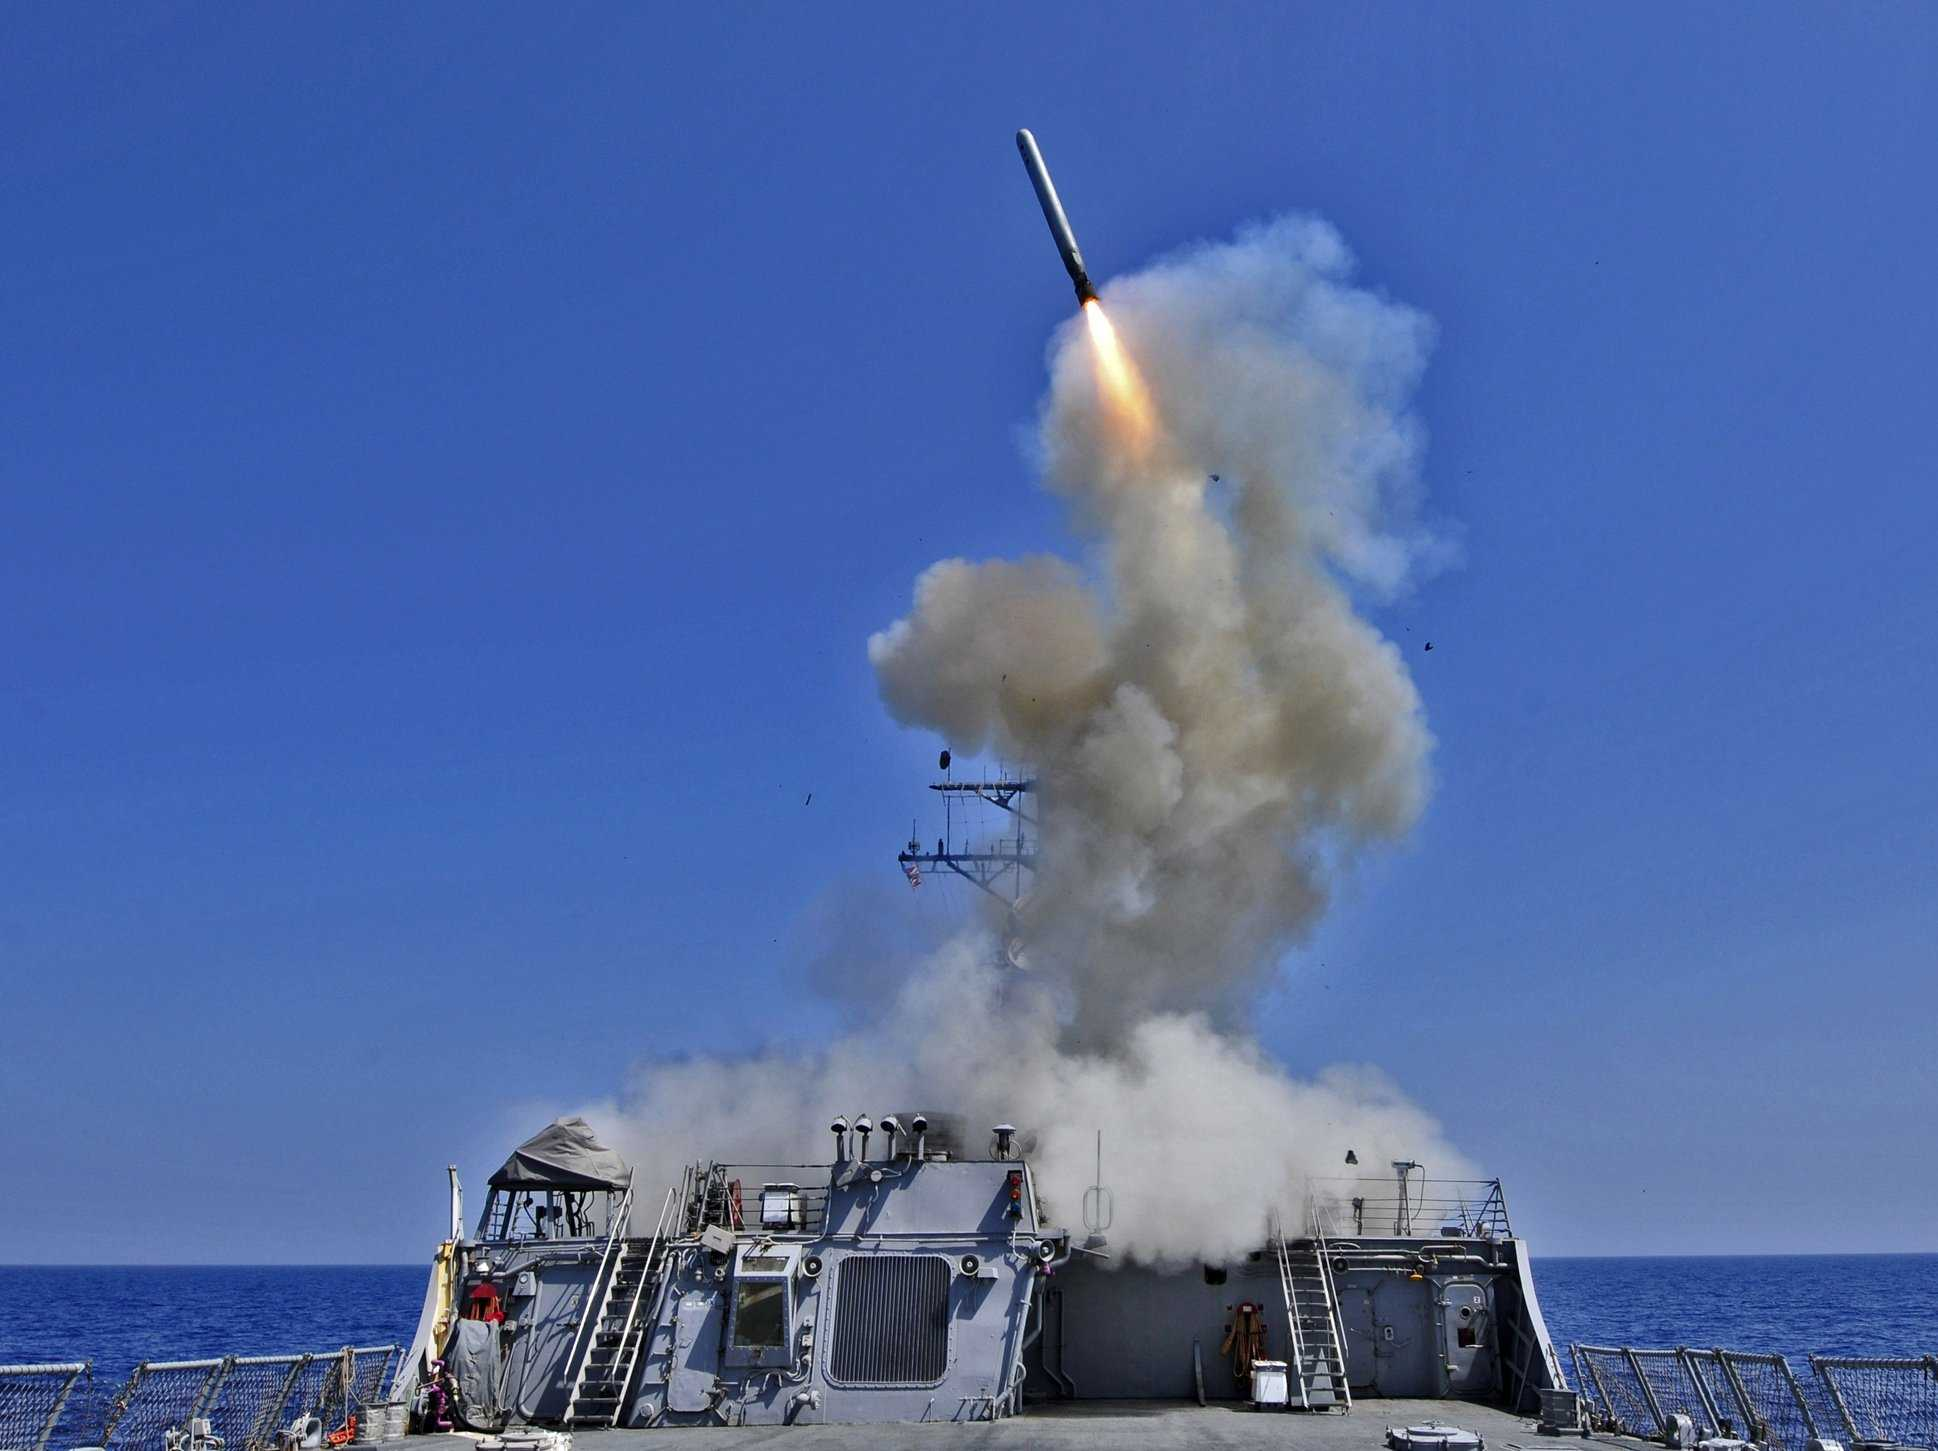 How the Draft Could End the Threat of Extended Military Engagements